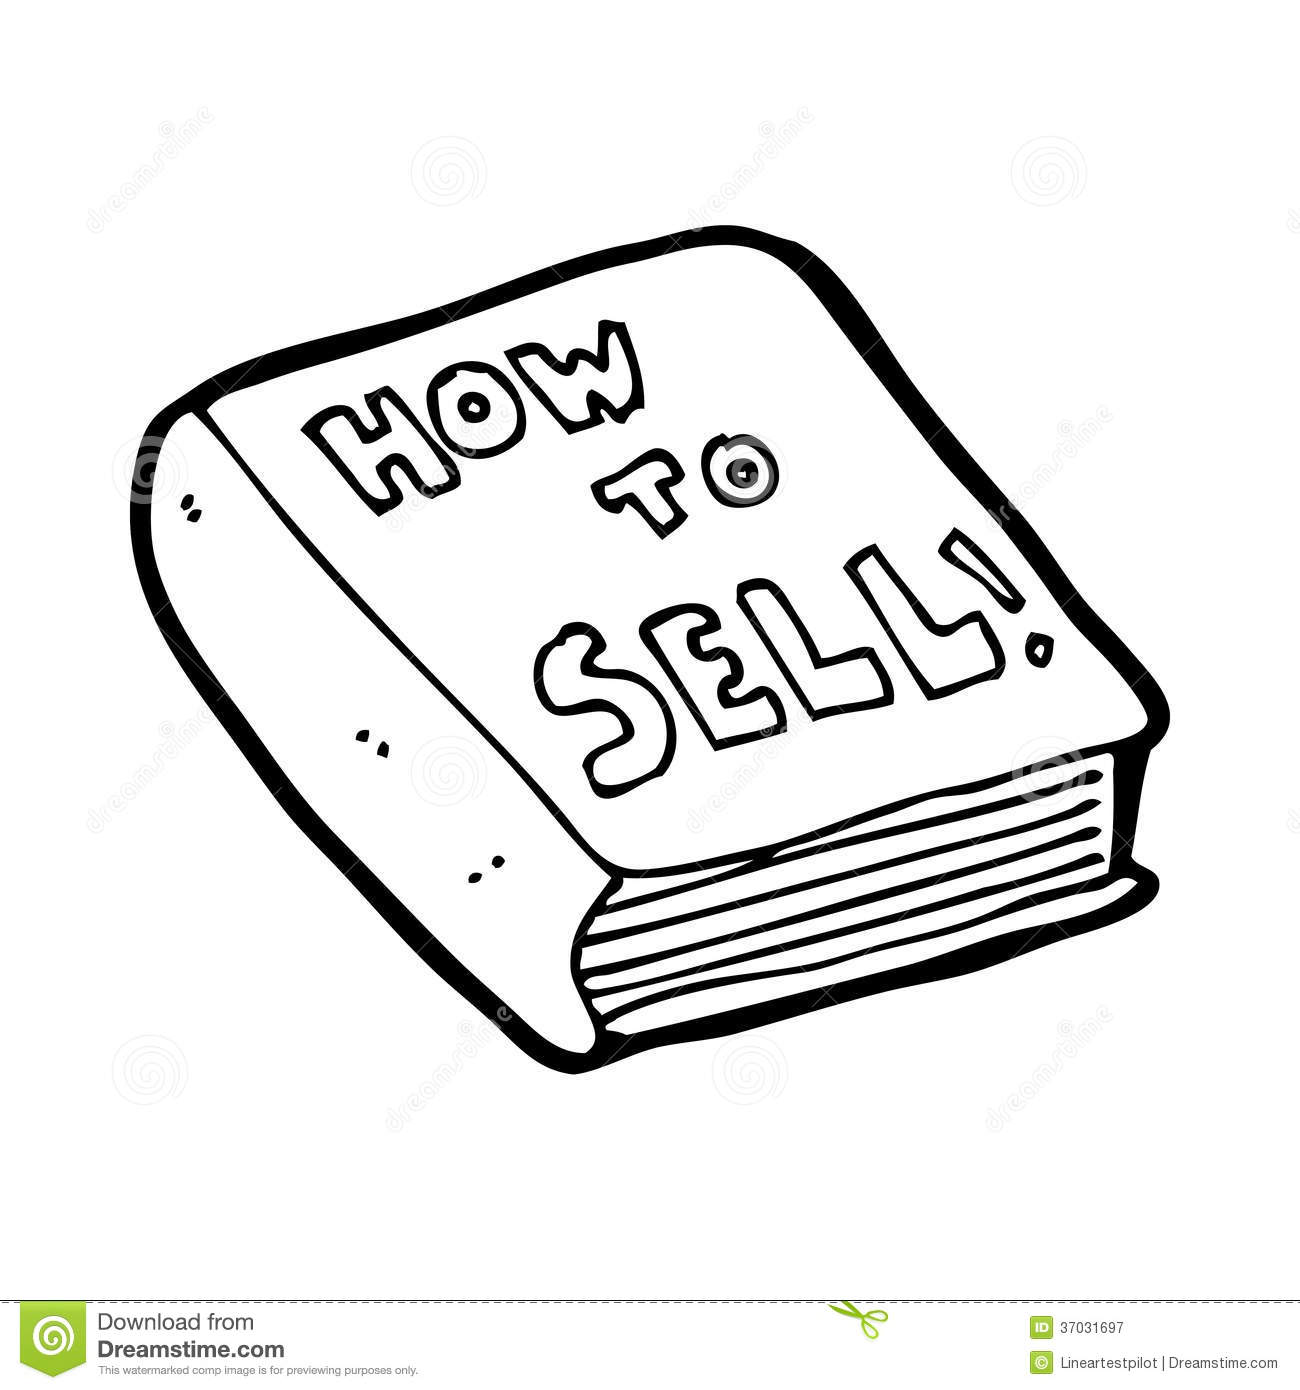 Cartoon how to sell book stock illustration. Image of